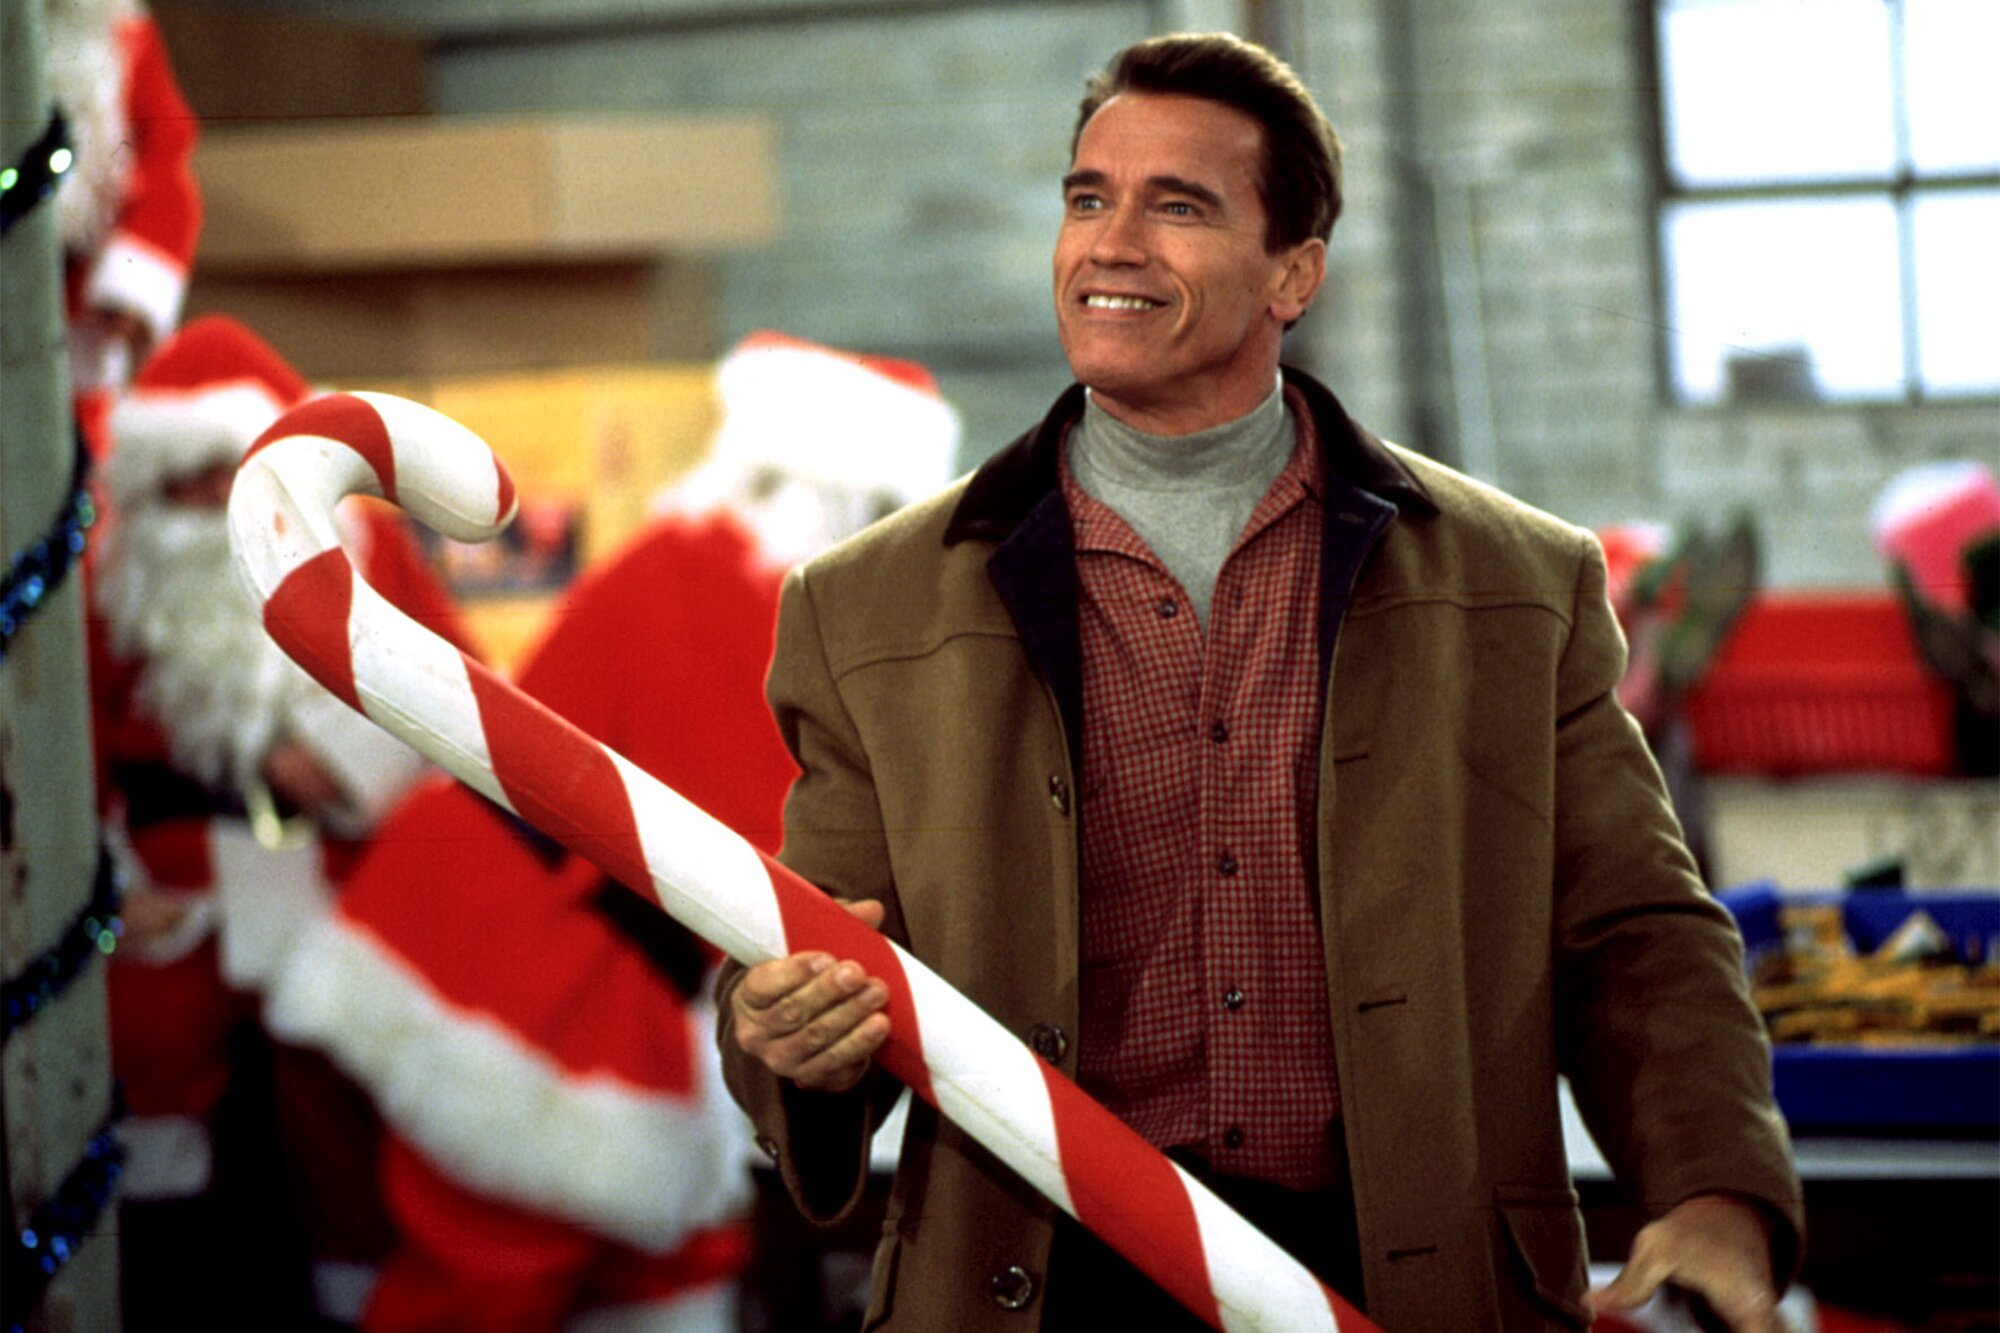 Jingle All the Way': Where are they now? | EW.com